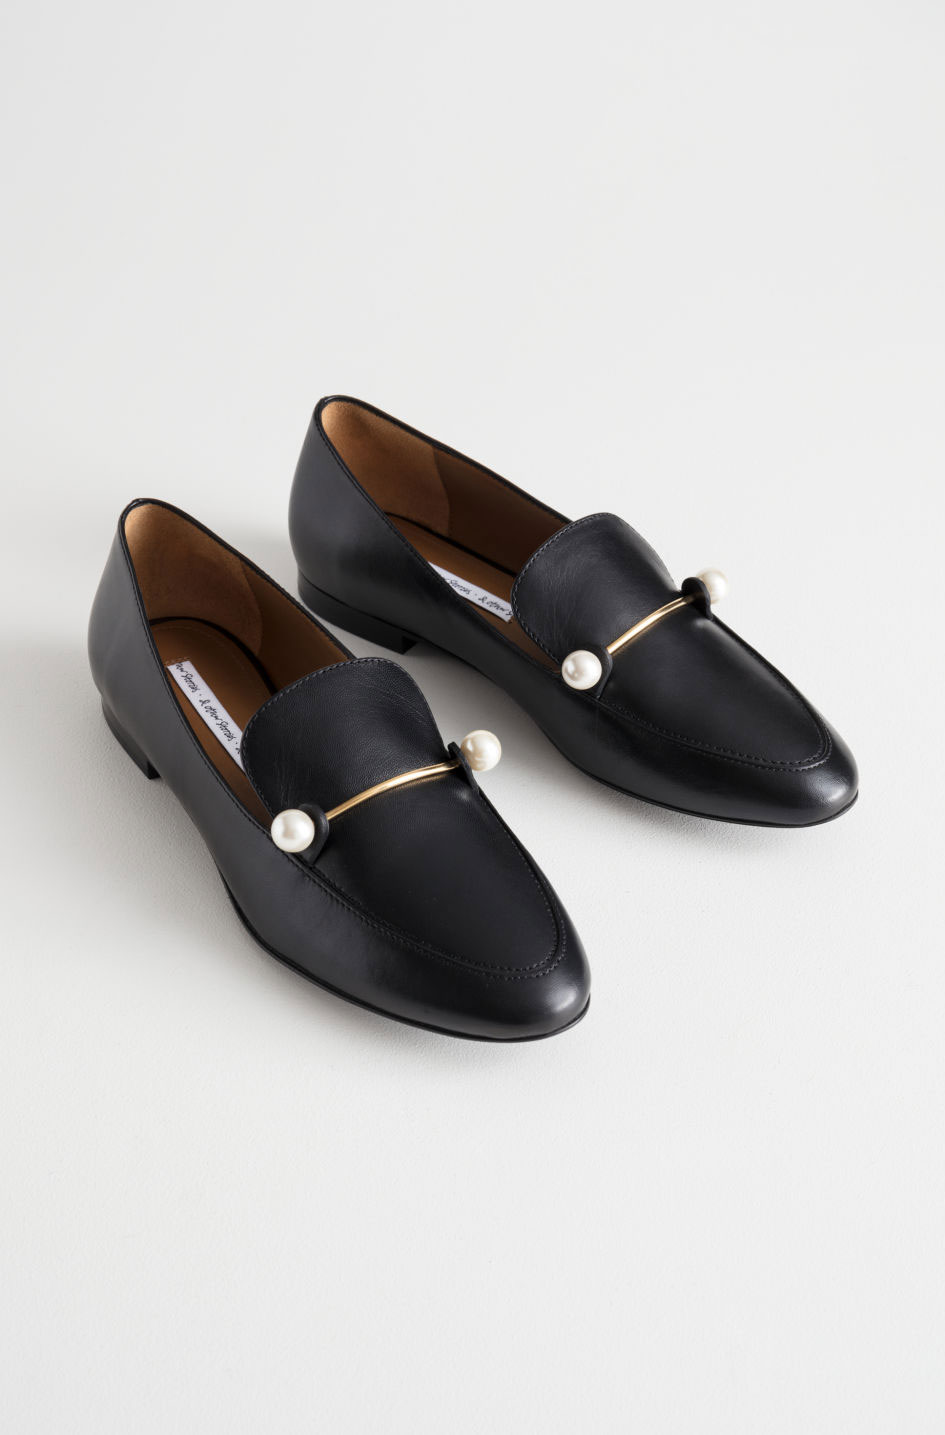 & Other Stories Loafer  $129